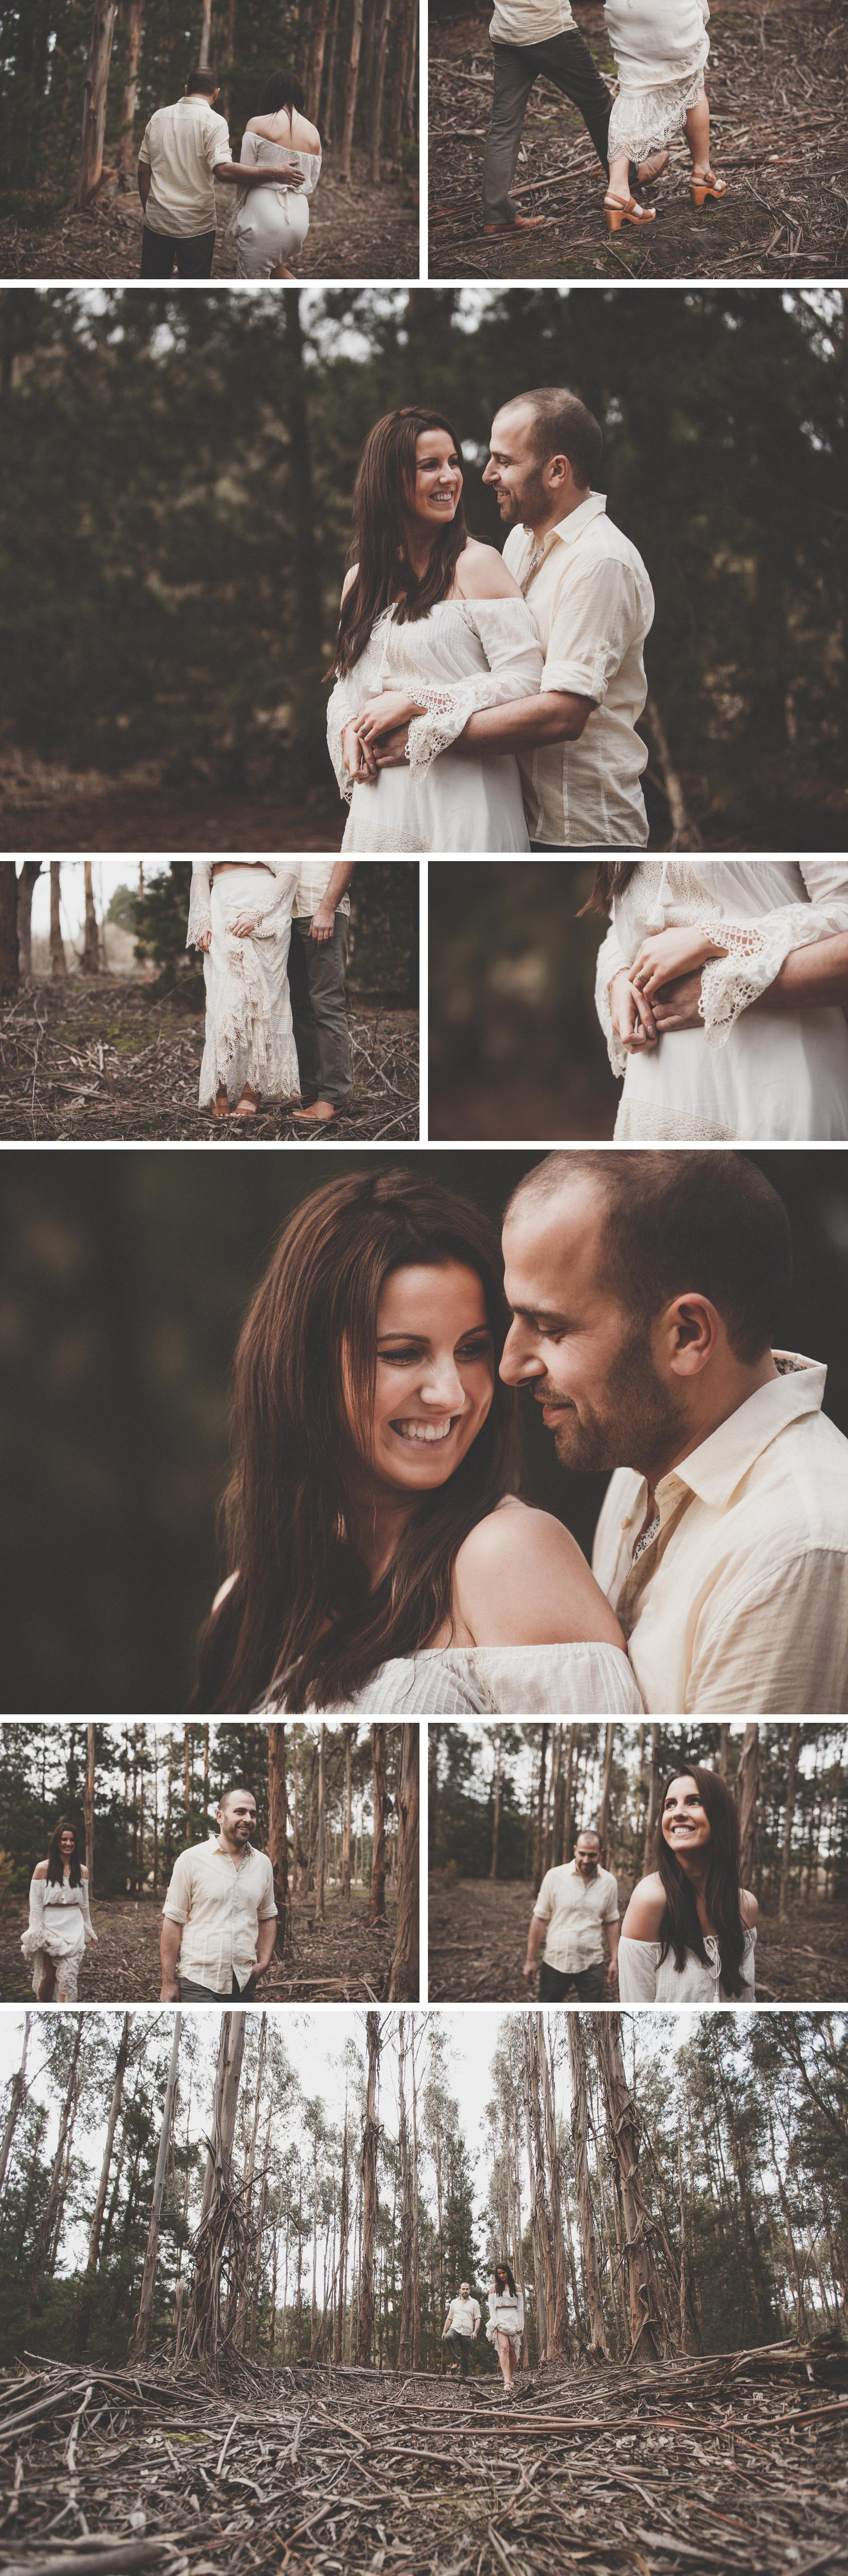 Forest Engagement Shoot, Gippsland Rural Wedding Engagement Photos, Bride and Groom Embracing Photo by Danae Studios